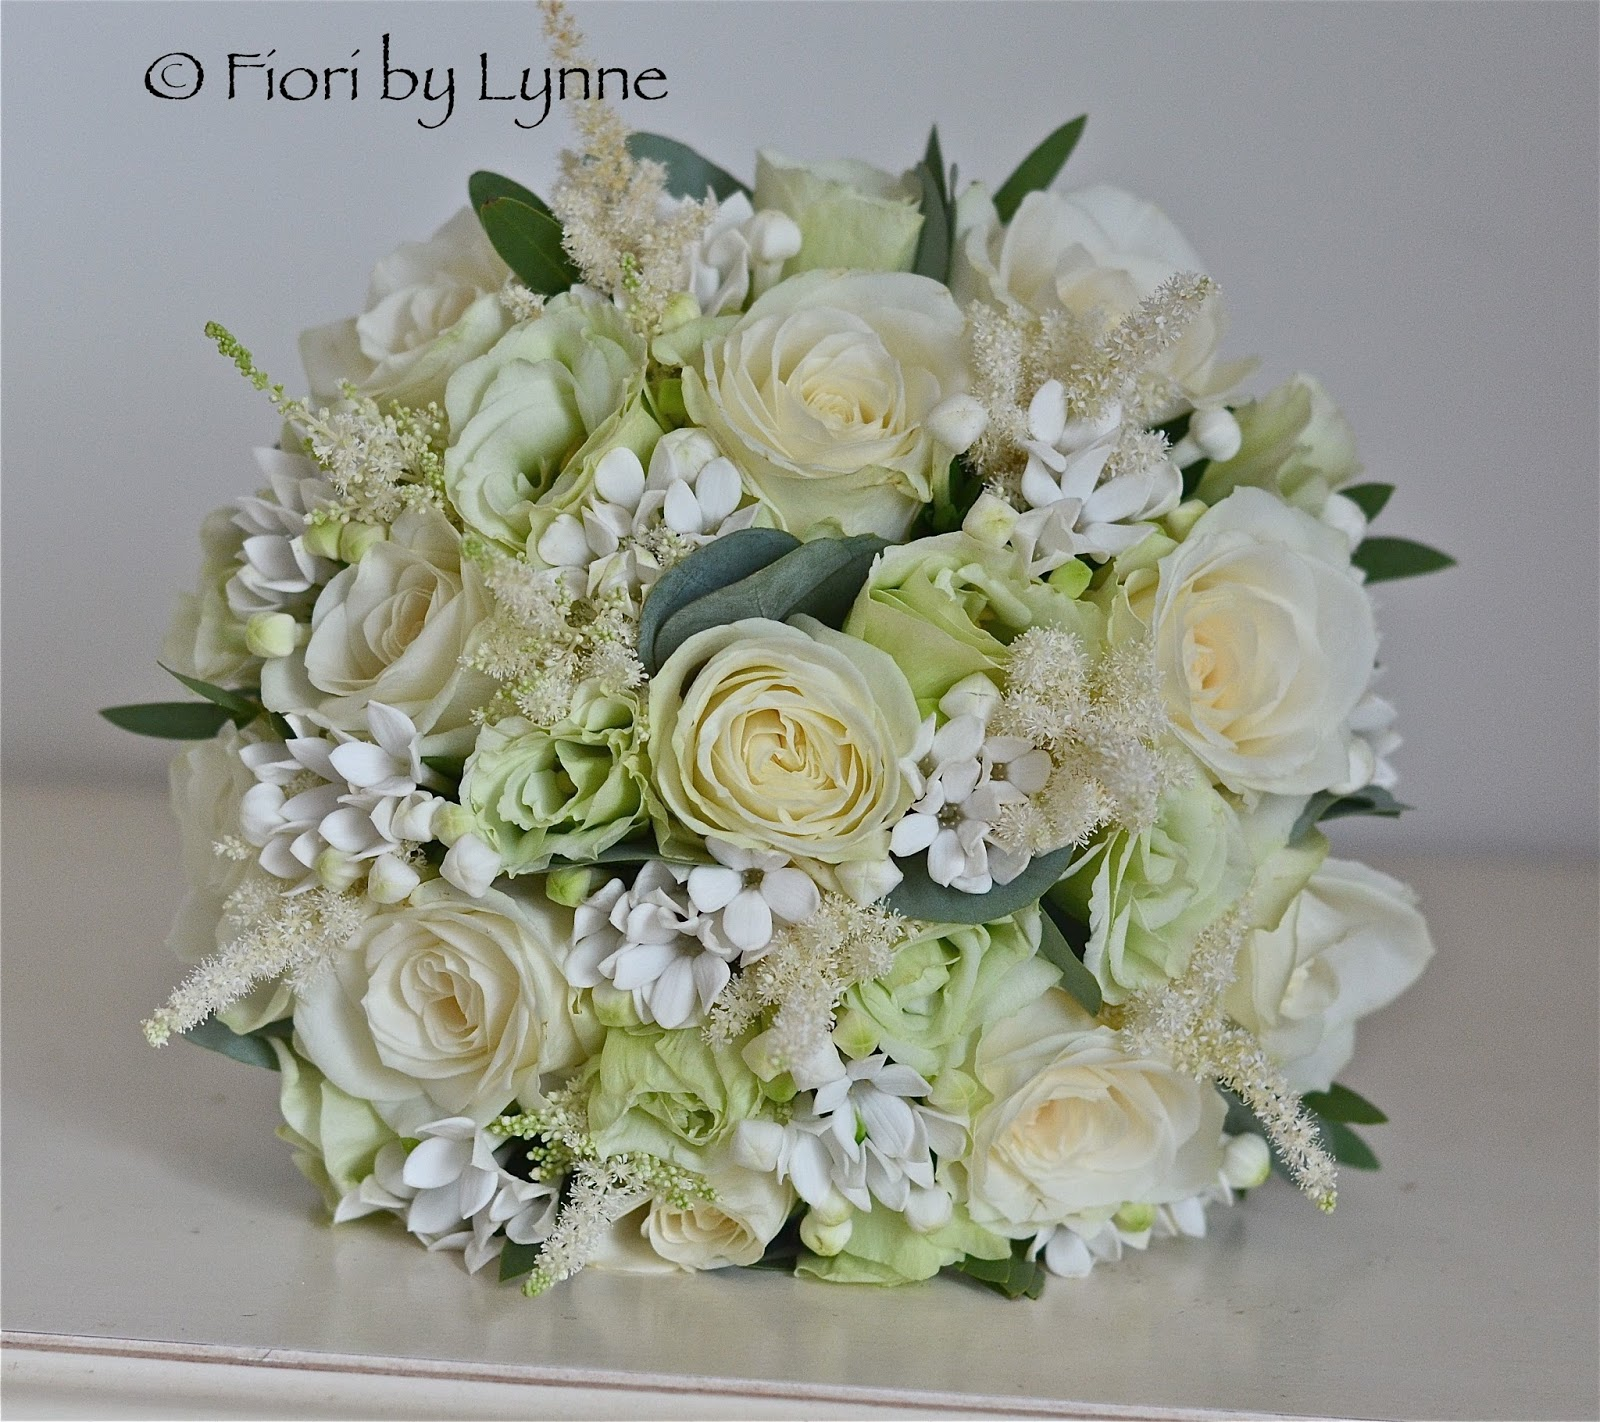 Wedding flowers blog rosies vintage wedding weddings old thorns bouquet in pale green silver and ivory for rosie using roses bouvardia apple lisianthus and white astilbe with a little touch of eucalyptus mightylinksfo